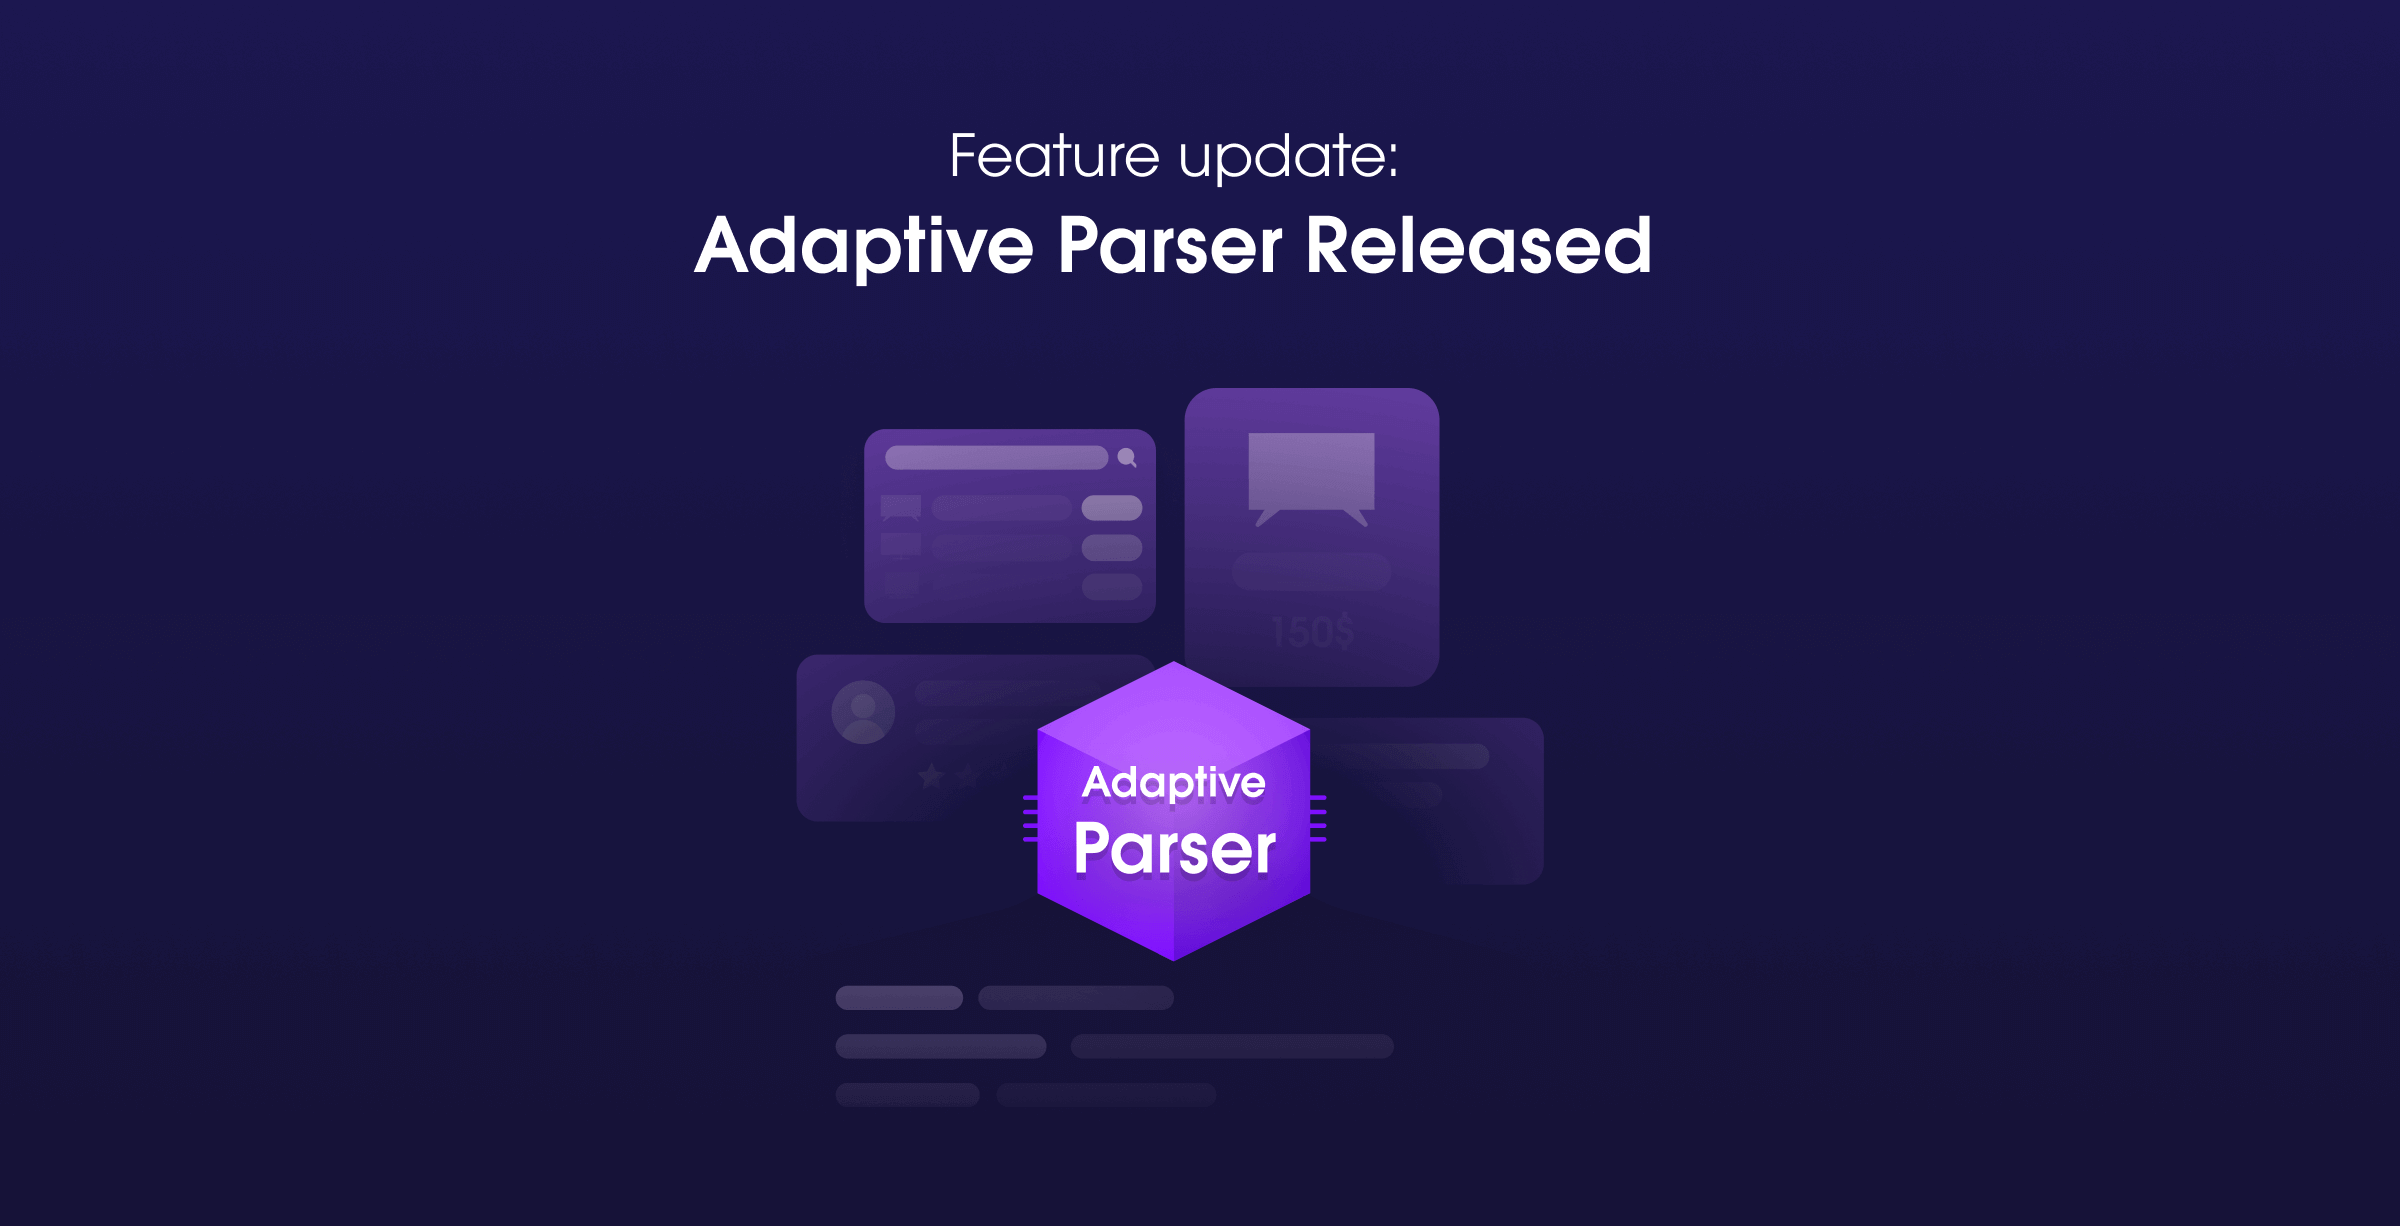 ML-Based Adaptive Parser Is Now In Production